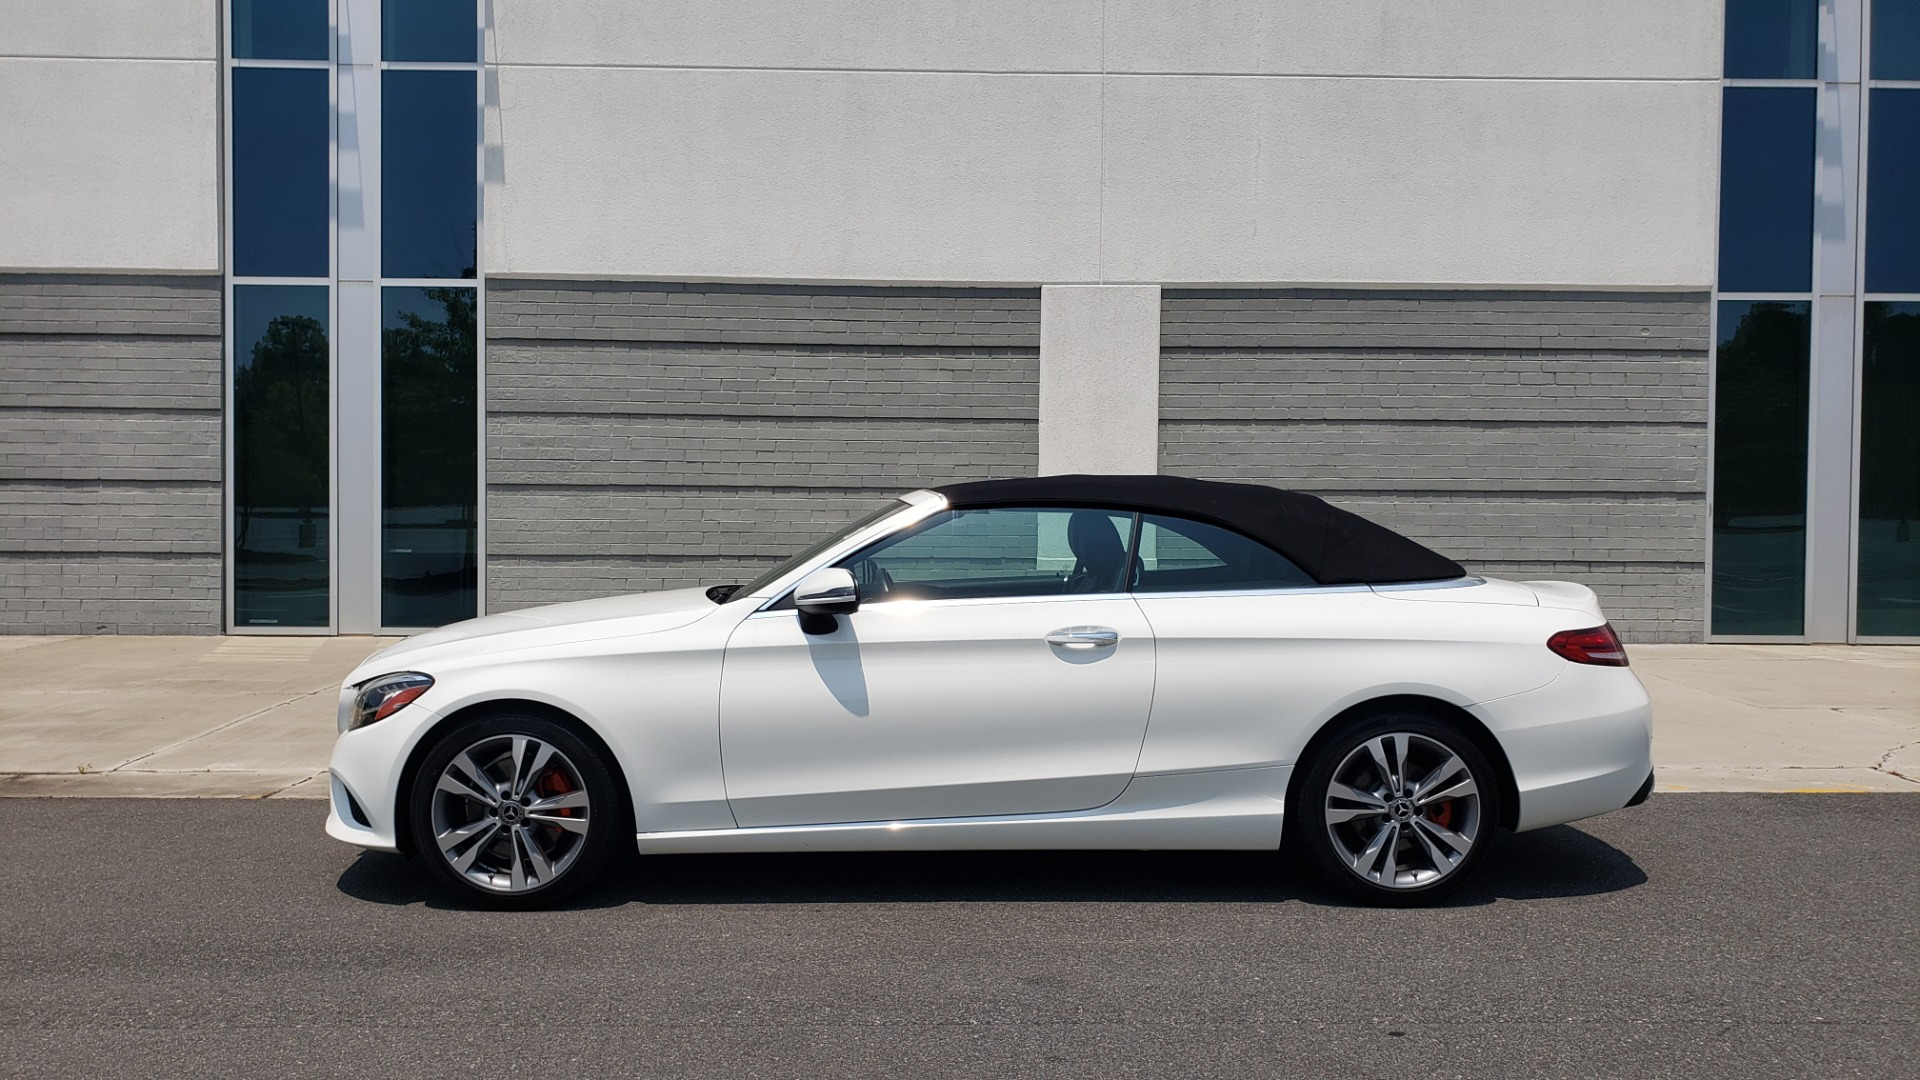 Used 2019 Mercedes-Benz C-CLASS C 300 CABRIOLET 2.0L / AUTO / NAV / HD RADIO / REARVIEW for sale $46,995 at Formula Imports in Charlotte NC 28227 7